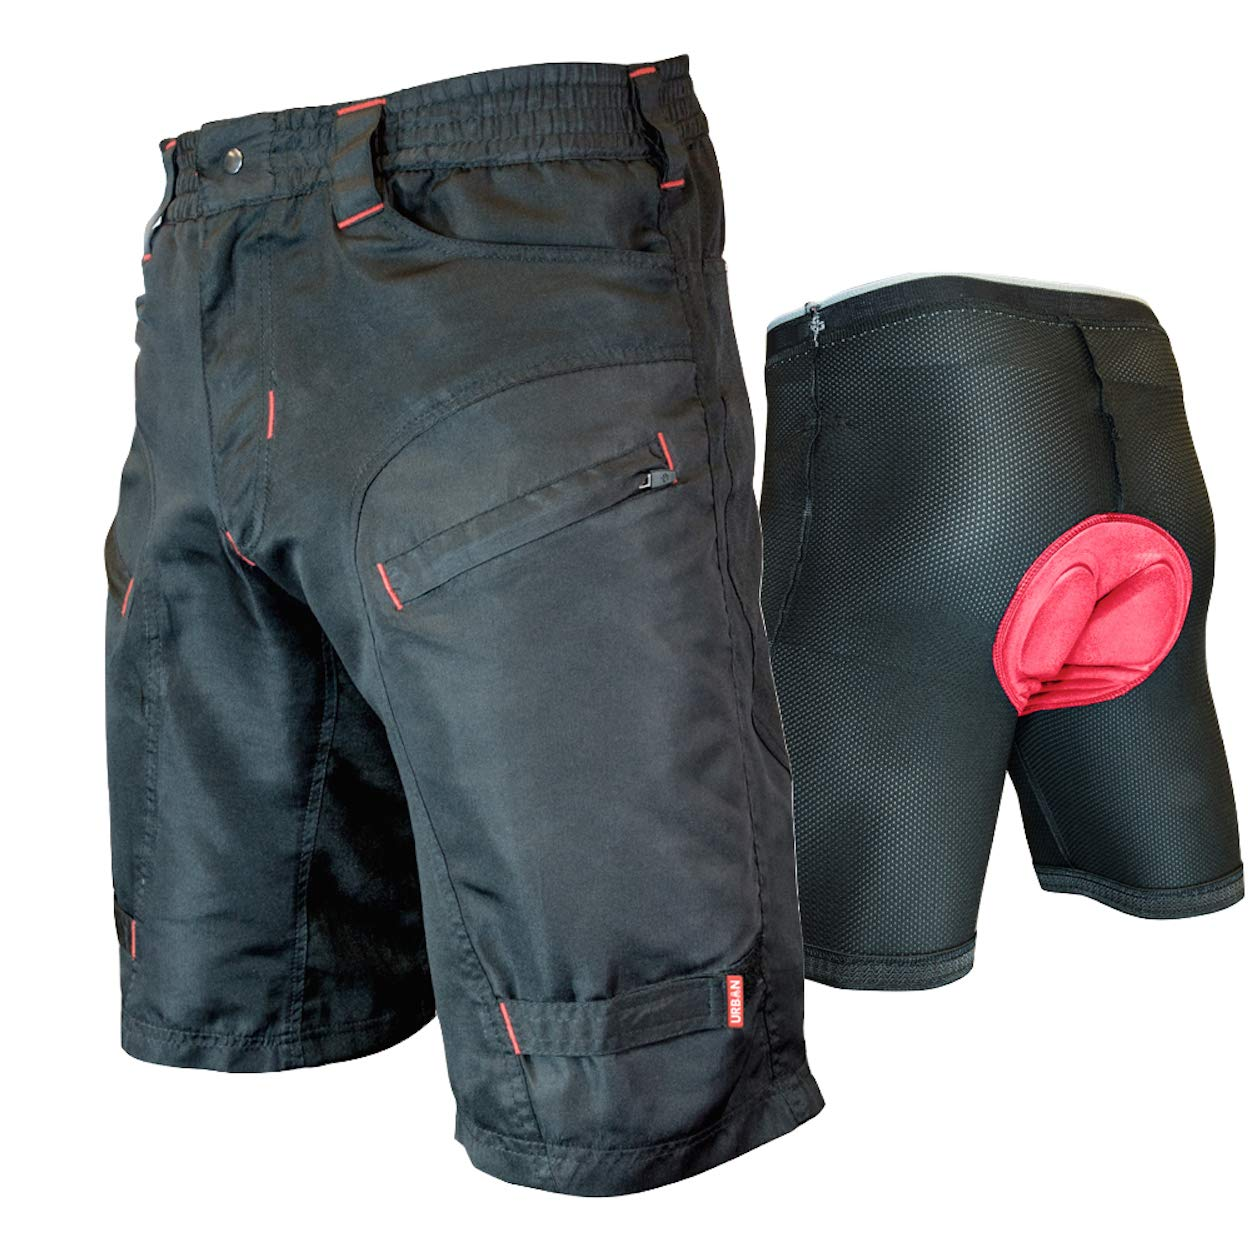 THE SINGLE TRACKER-Mountain Bike Cargo Shorts, With Premium Antibacterial G-tex Padded Undershorts, Small 26-28''